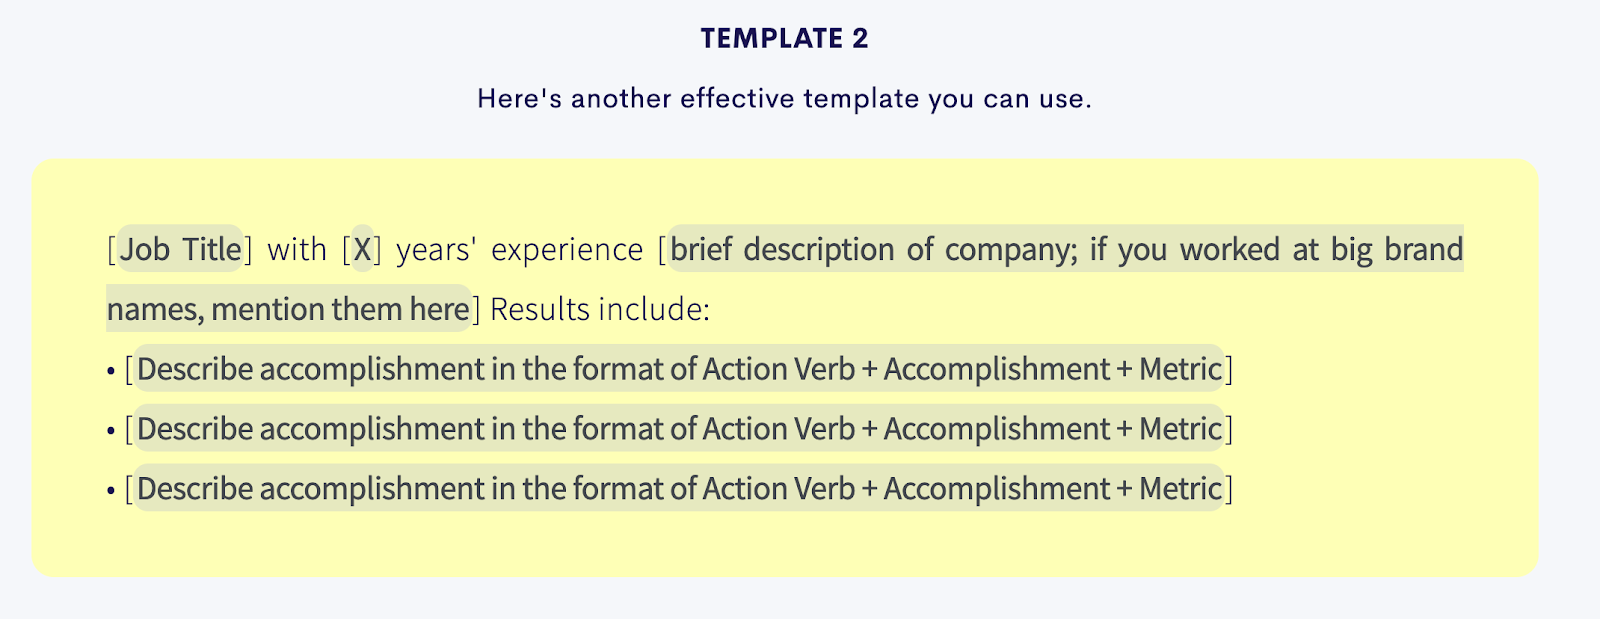 Resume summary template that prioritizes top three accomplishments from past experience